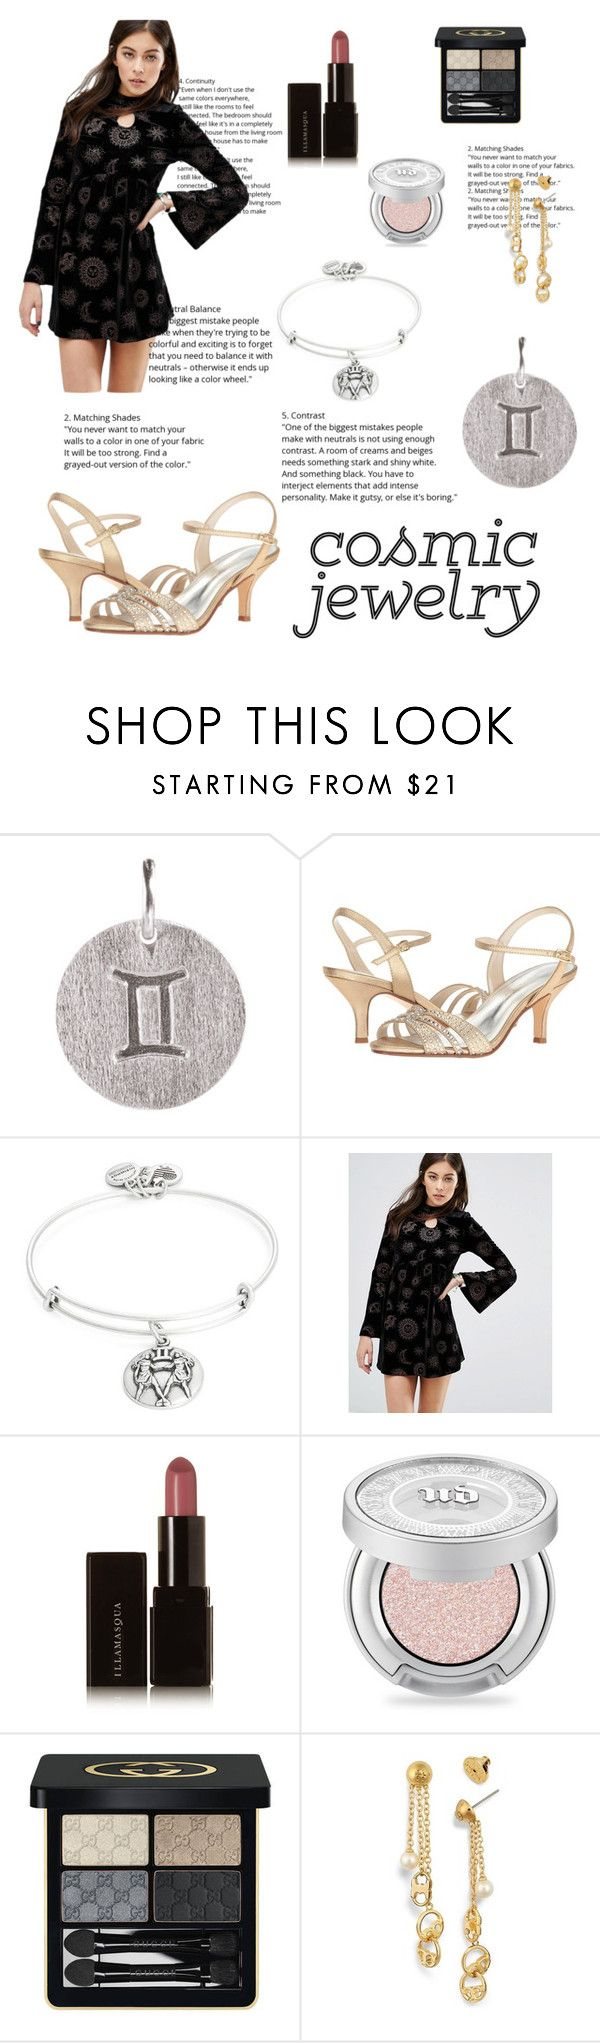 """""""Gemini Jewelry"""" by lizdp ❤ liked on Polyvore featuring Pernille Corydon, Caparros, Alex and Ani, Motel, Illamasqua, Urban Decay, Gucci and Tory Burch"""